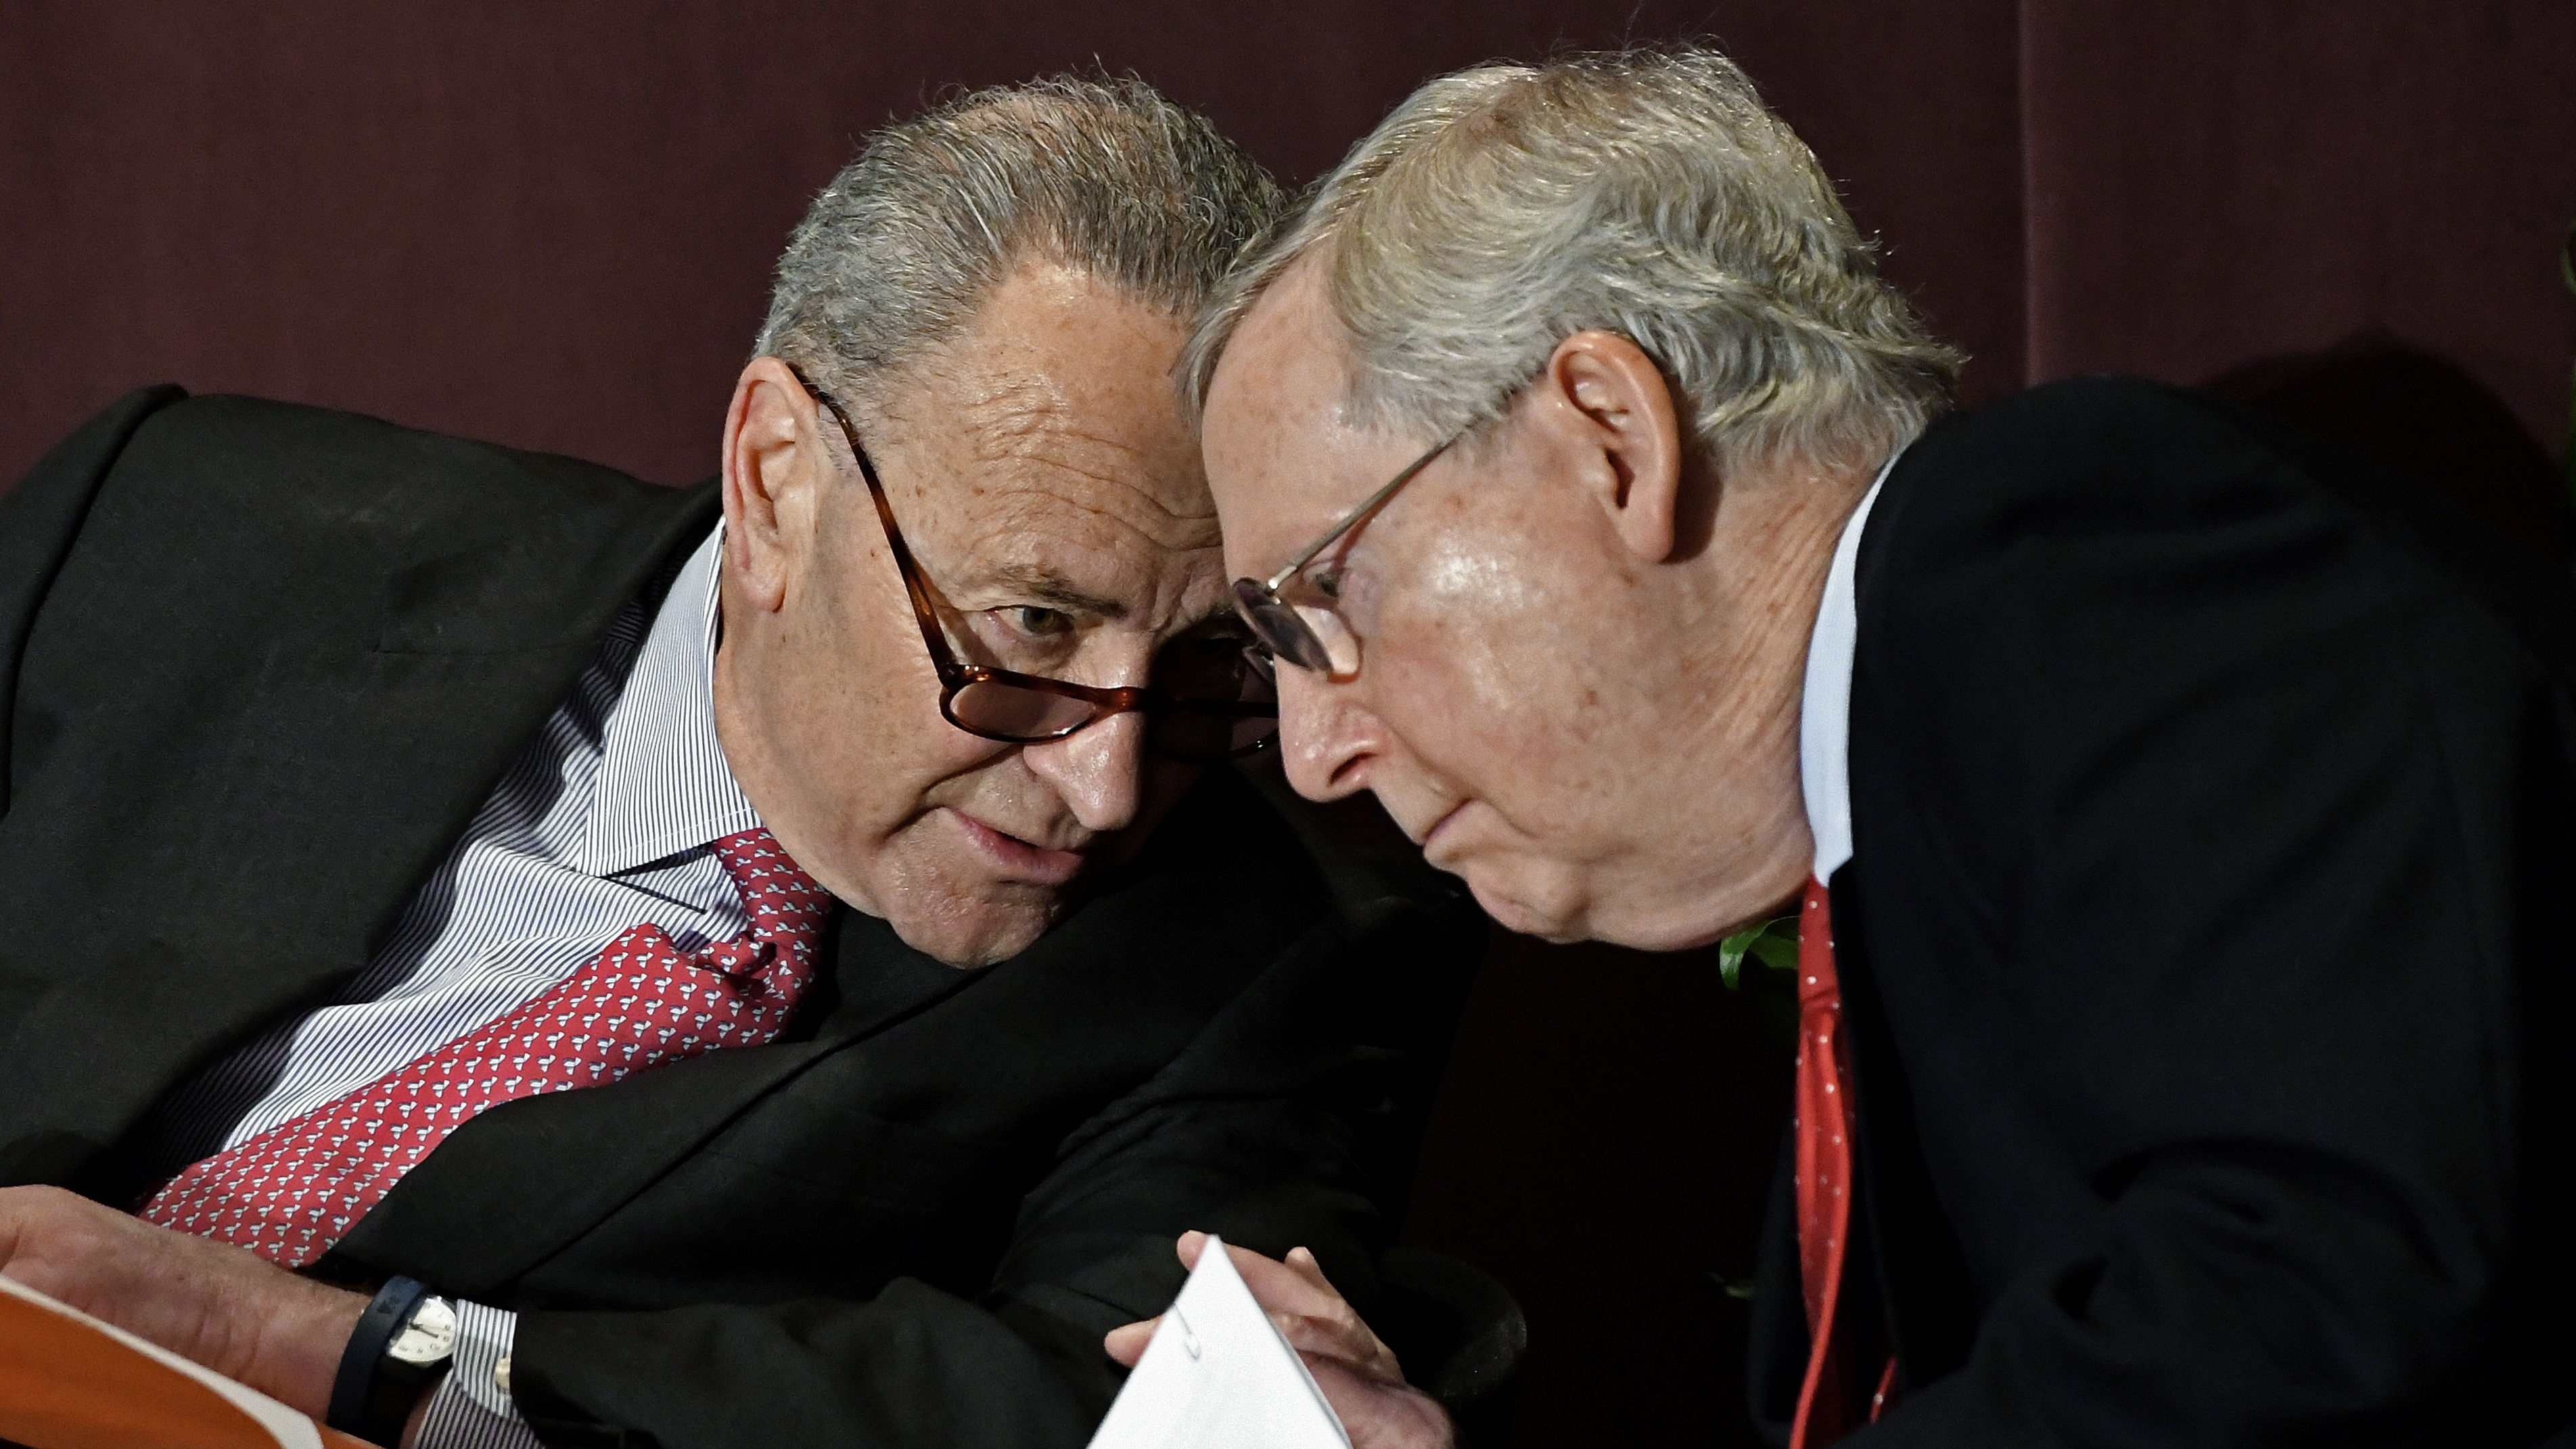 Sens. Chuck Schumer, D-N.Y., and Mitch McConnell, R-Ky., (pictured here in 2018) recently came to an agreement that would bring proposals offered by both President Donald Trump and Democratic leaders to the Senate floor for votes. (Timothy D. Easley/AP)